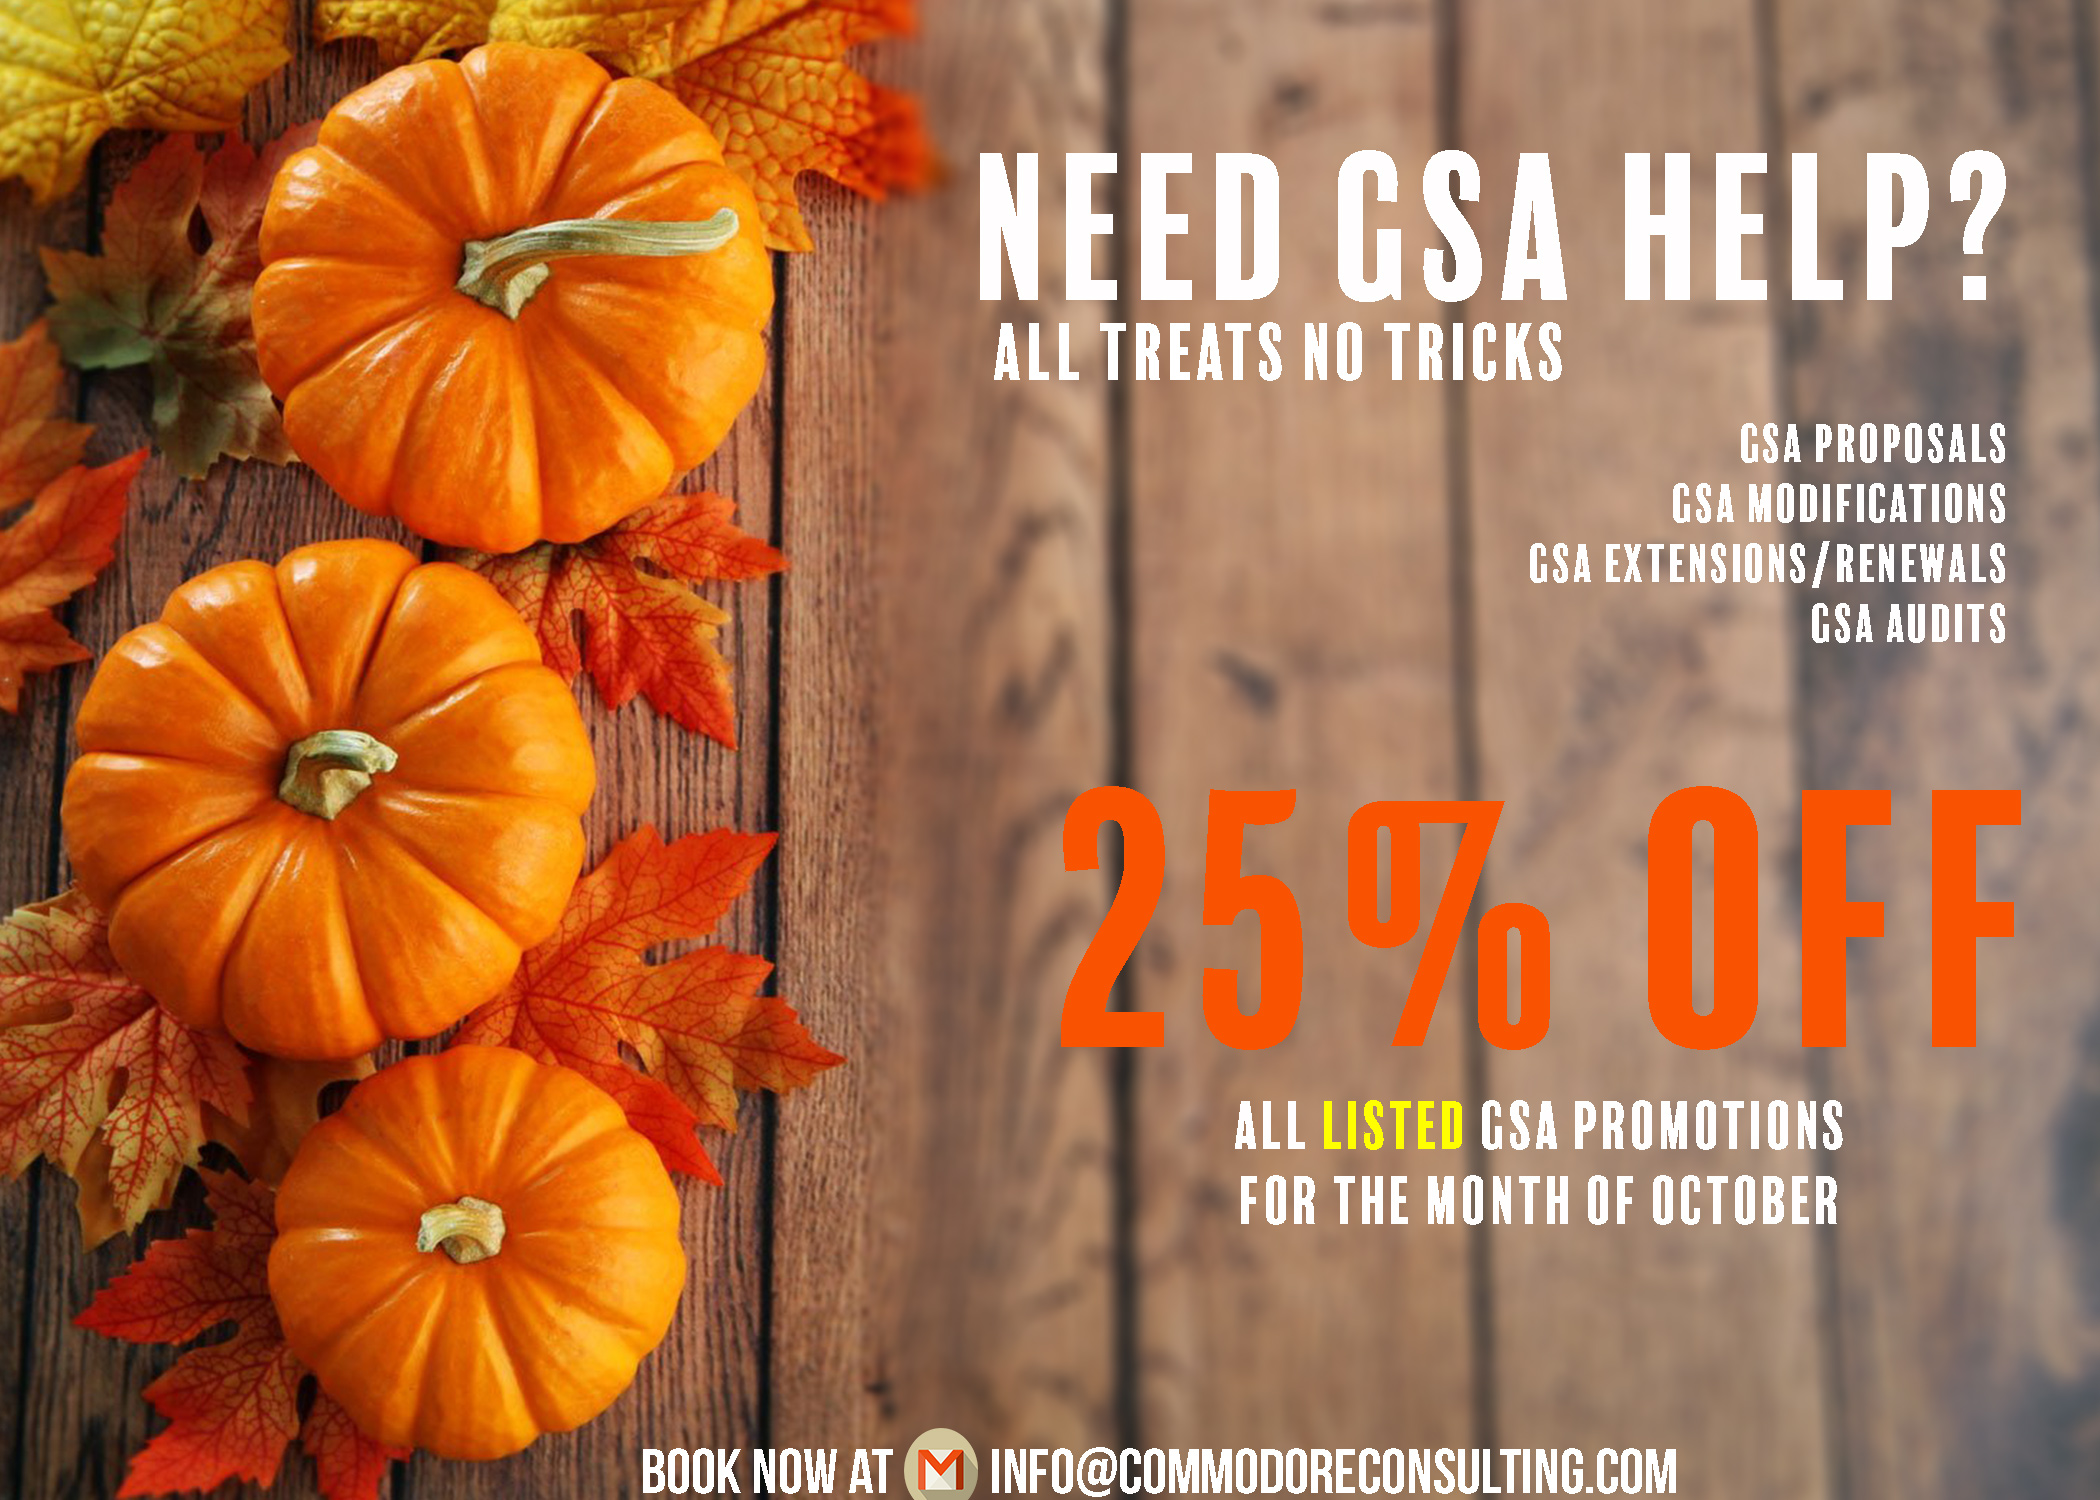 Fall in Love with our GSA Sale - 25% off all LISTED GSA Services for the Month of October